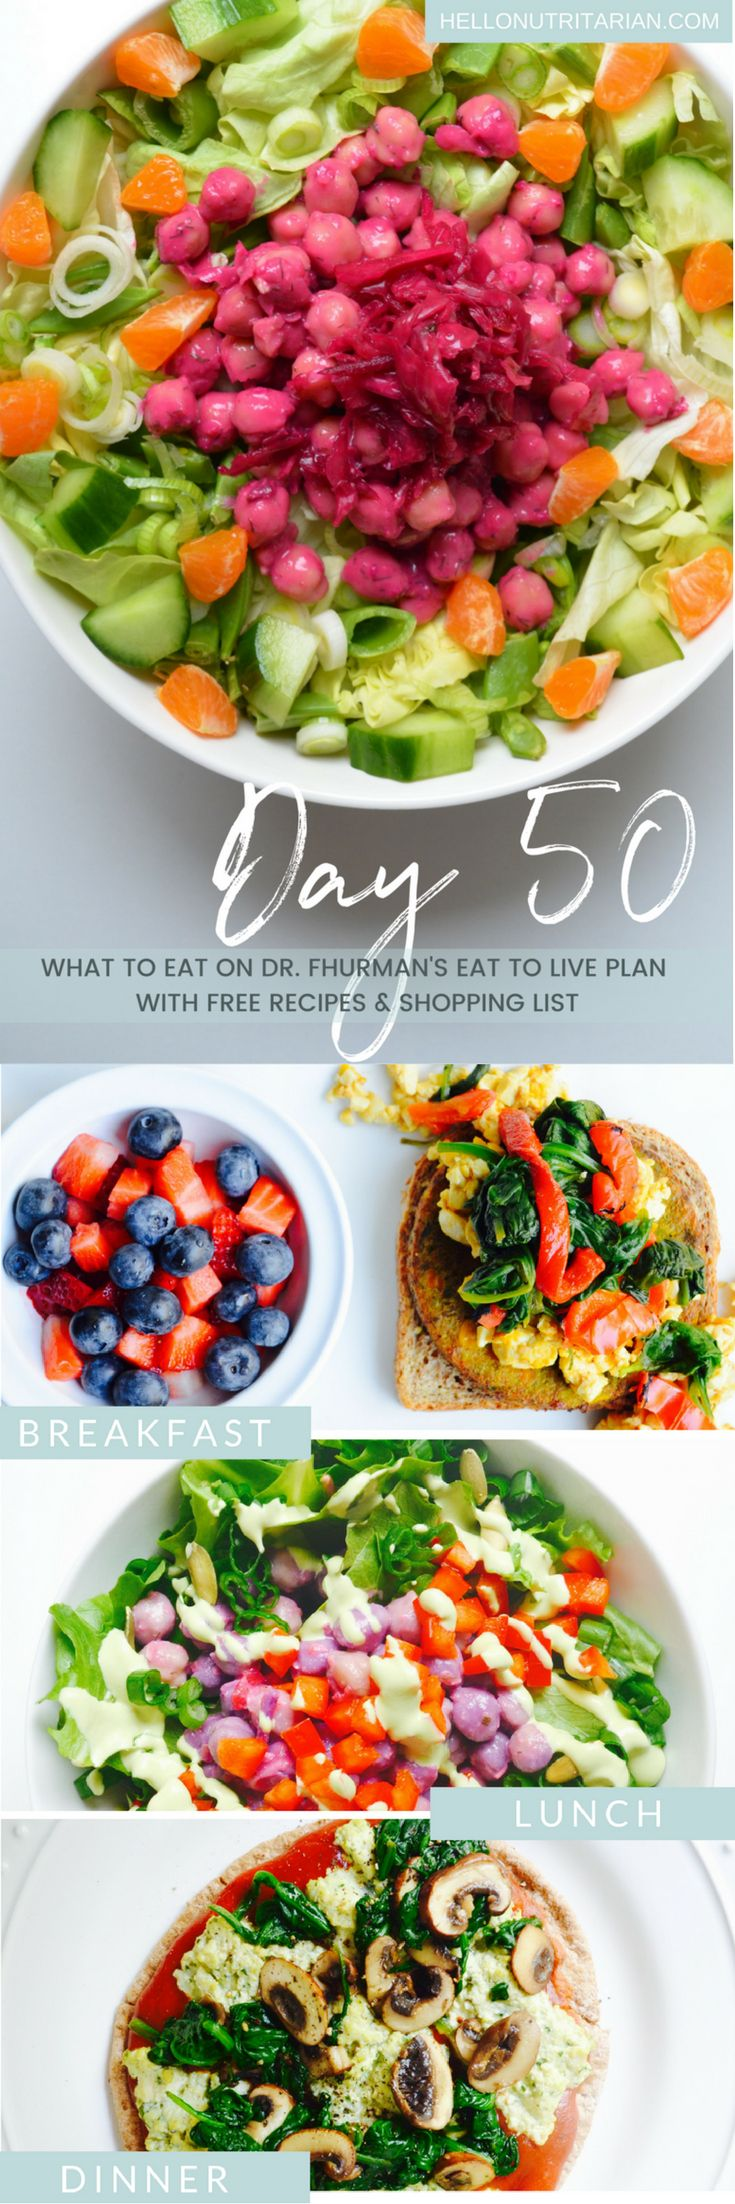 What to eat when you're on a whole food plant based diet, vegan, nutritarian, low-salt, and oil-free!  Get a free daily menu, printable shopping list and links to all the recipes you need for breakfast, lunch and dinner!  Perfect when you're just starting our following Dr. Fuhrman's Eat to Live 6 week plan or Dr. Greger's How not to Die Daily Dozen protocol!  xo, Kristen #nutritarian #eattolive #drfuhrman #drgreger #hownottodie #whatthehealth